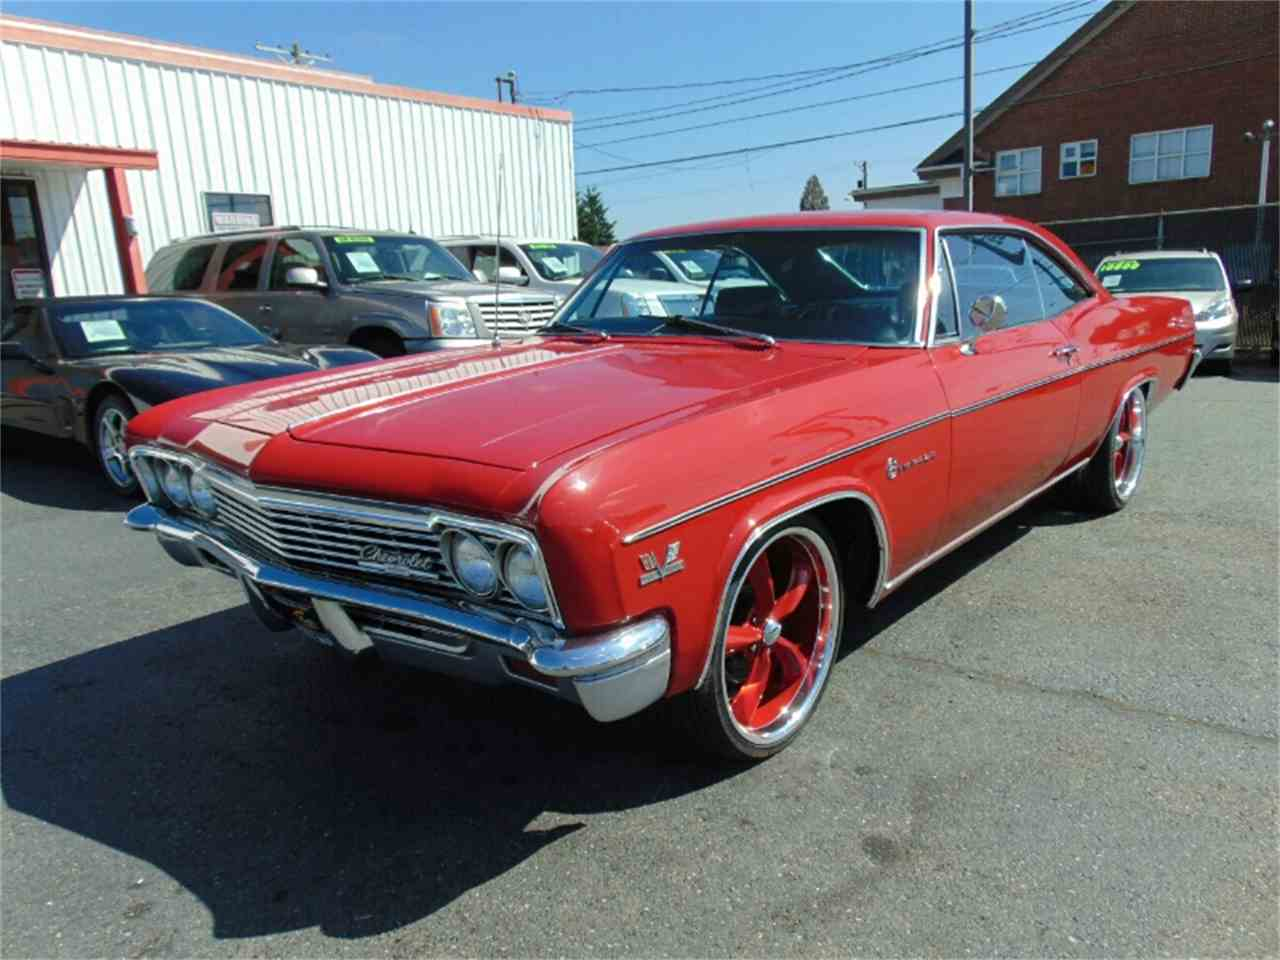 Image 48 Of 50 1966 Chevrolet Impala Ss Convertible Vii By Chevy 427 For Sale Classiccarscom Cc 894077